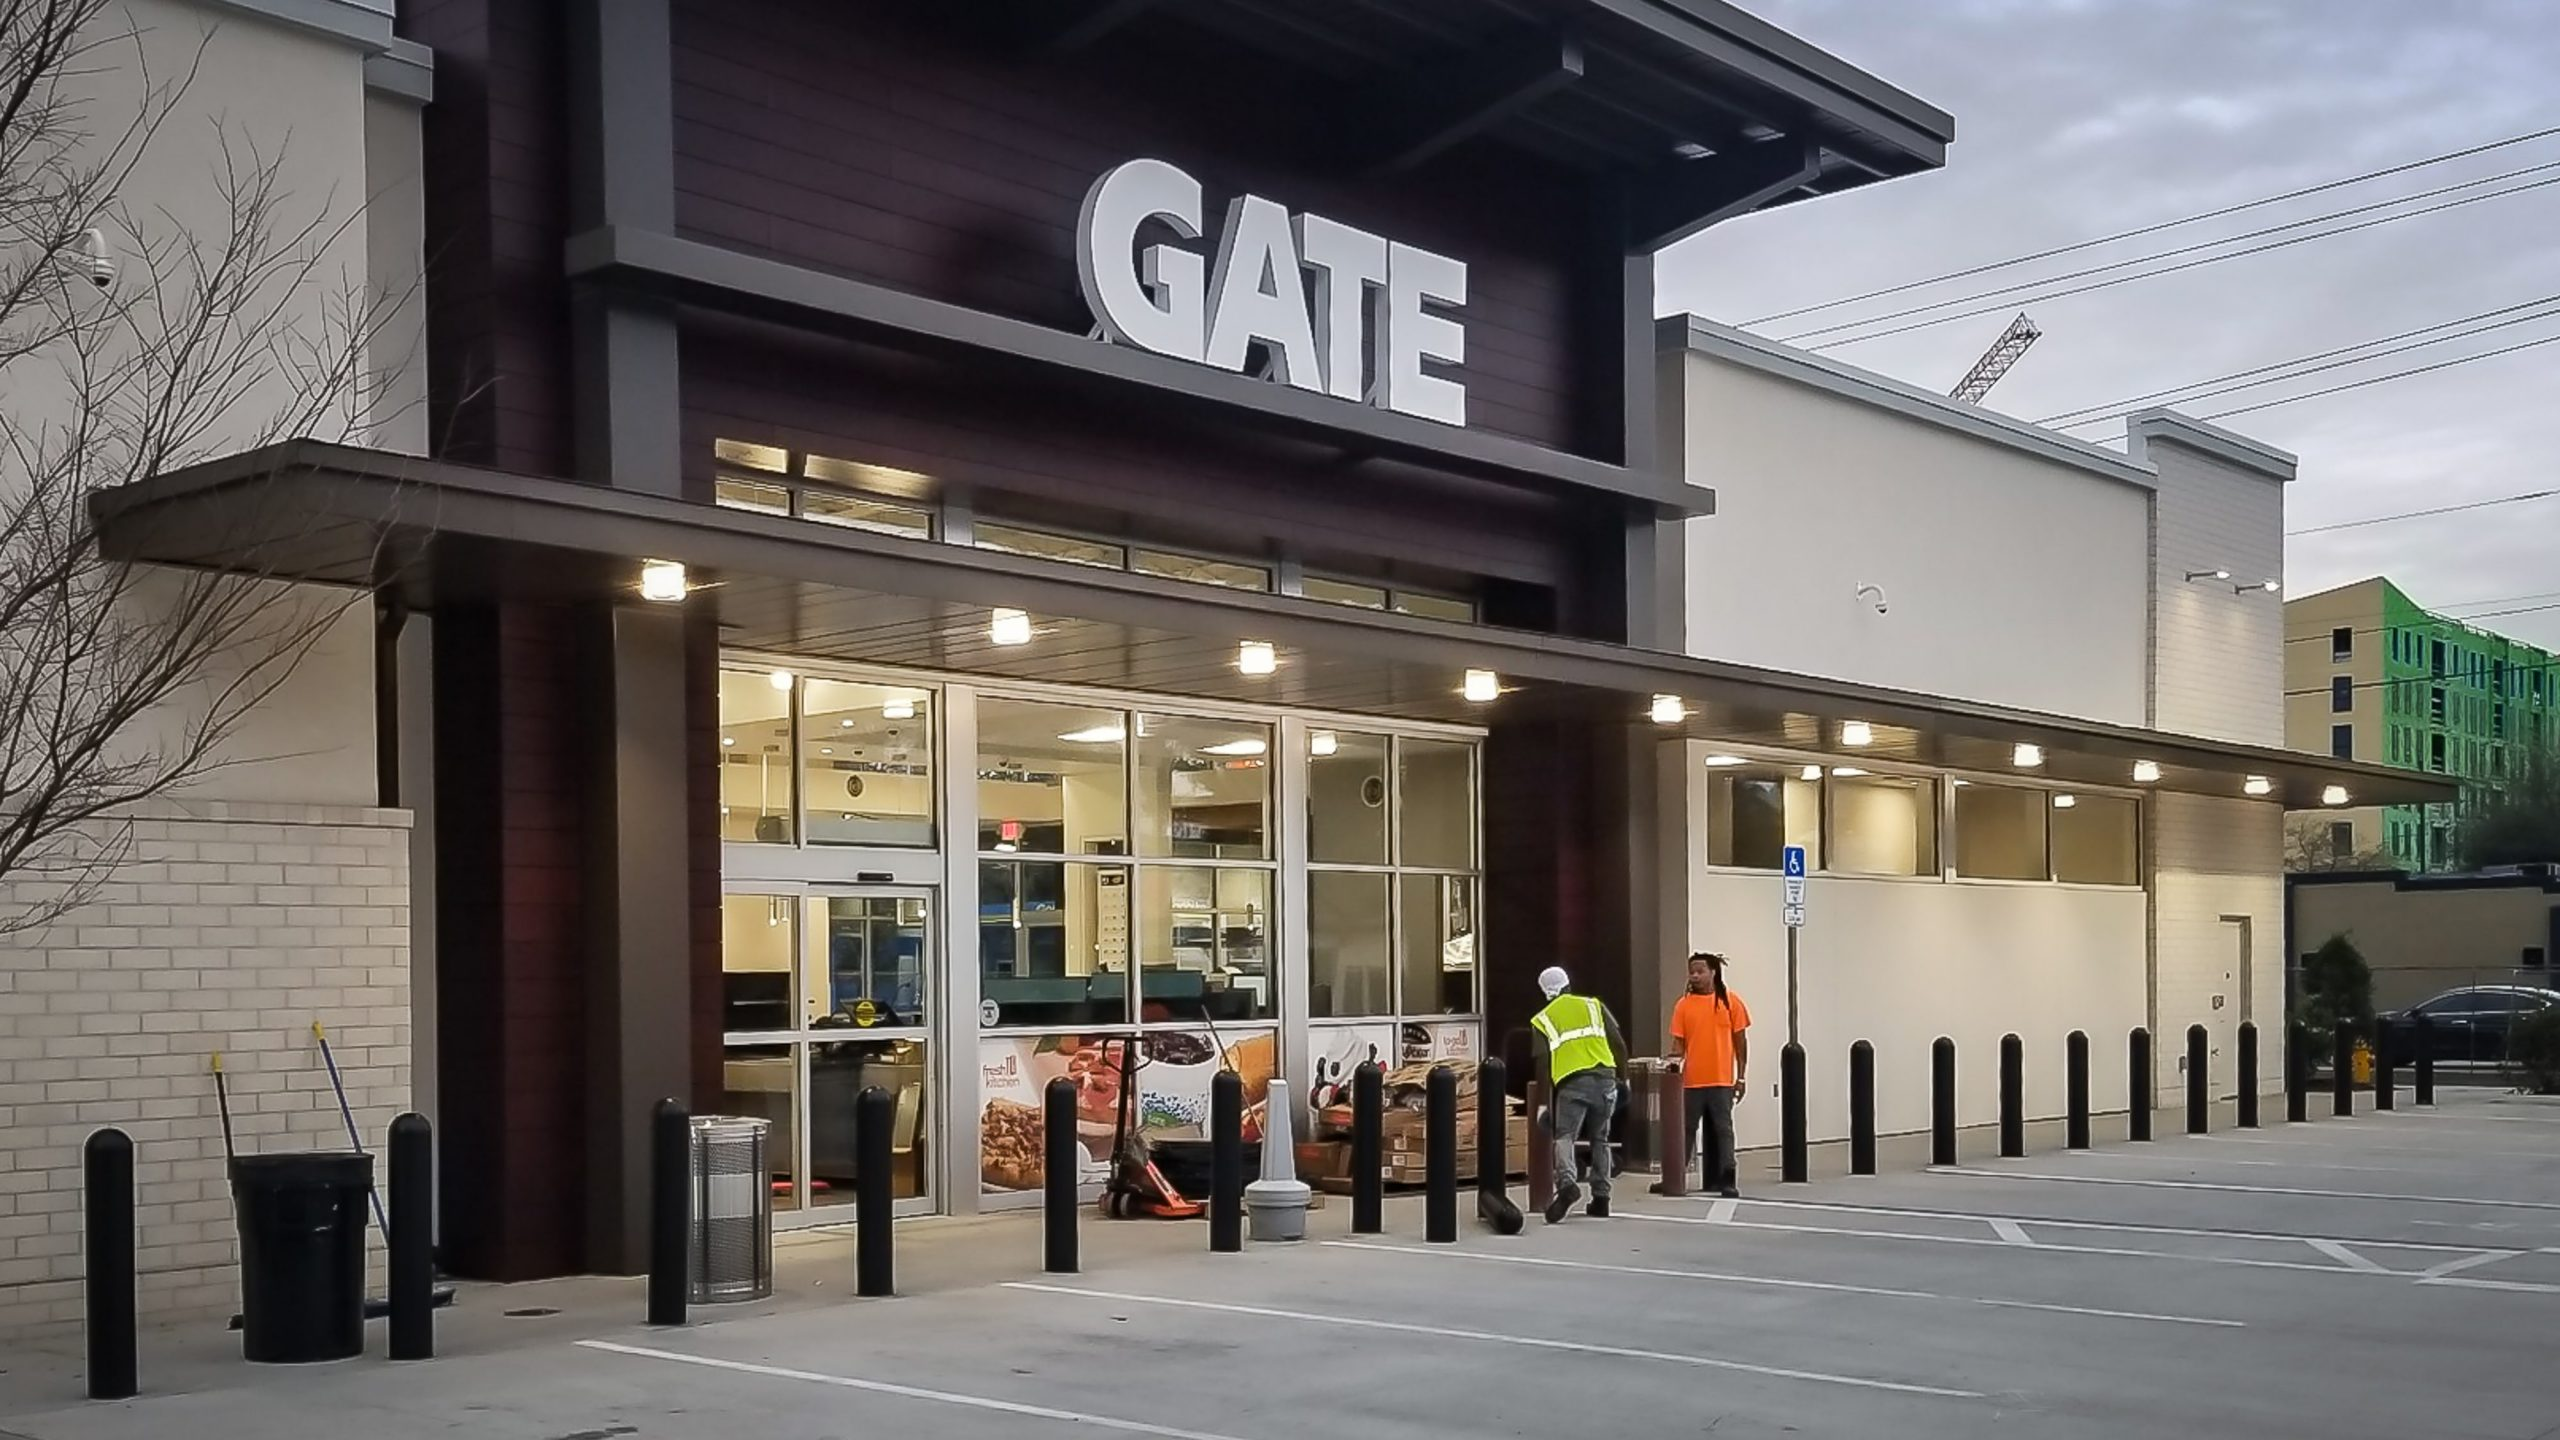 Awnex Cantilevered Canopy project at Gate Gas Station in Gainesville Florida, Front view.